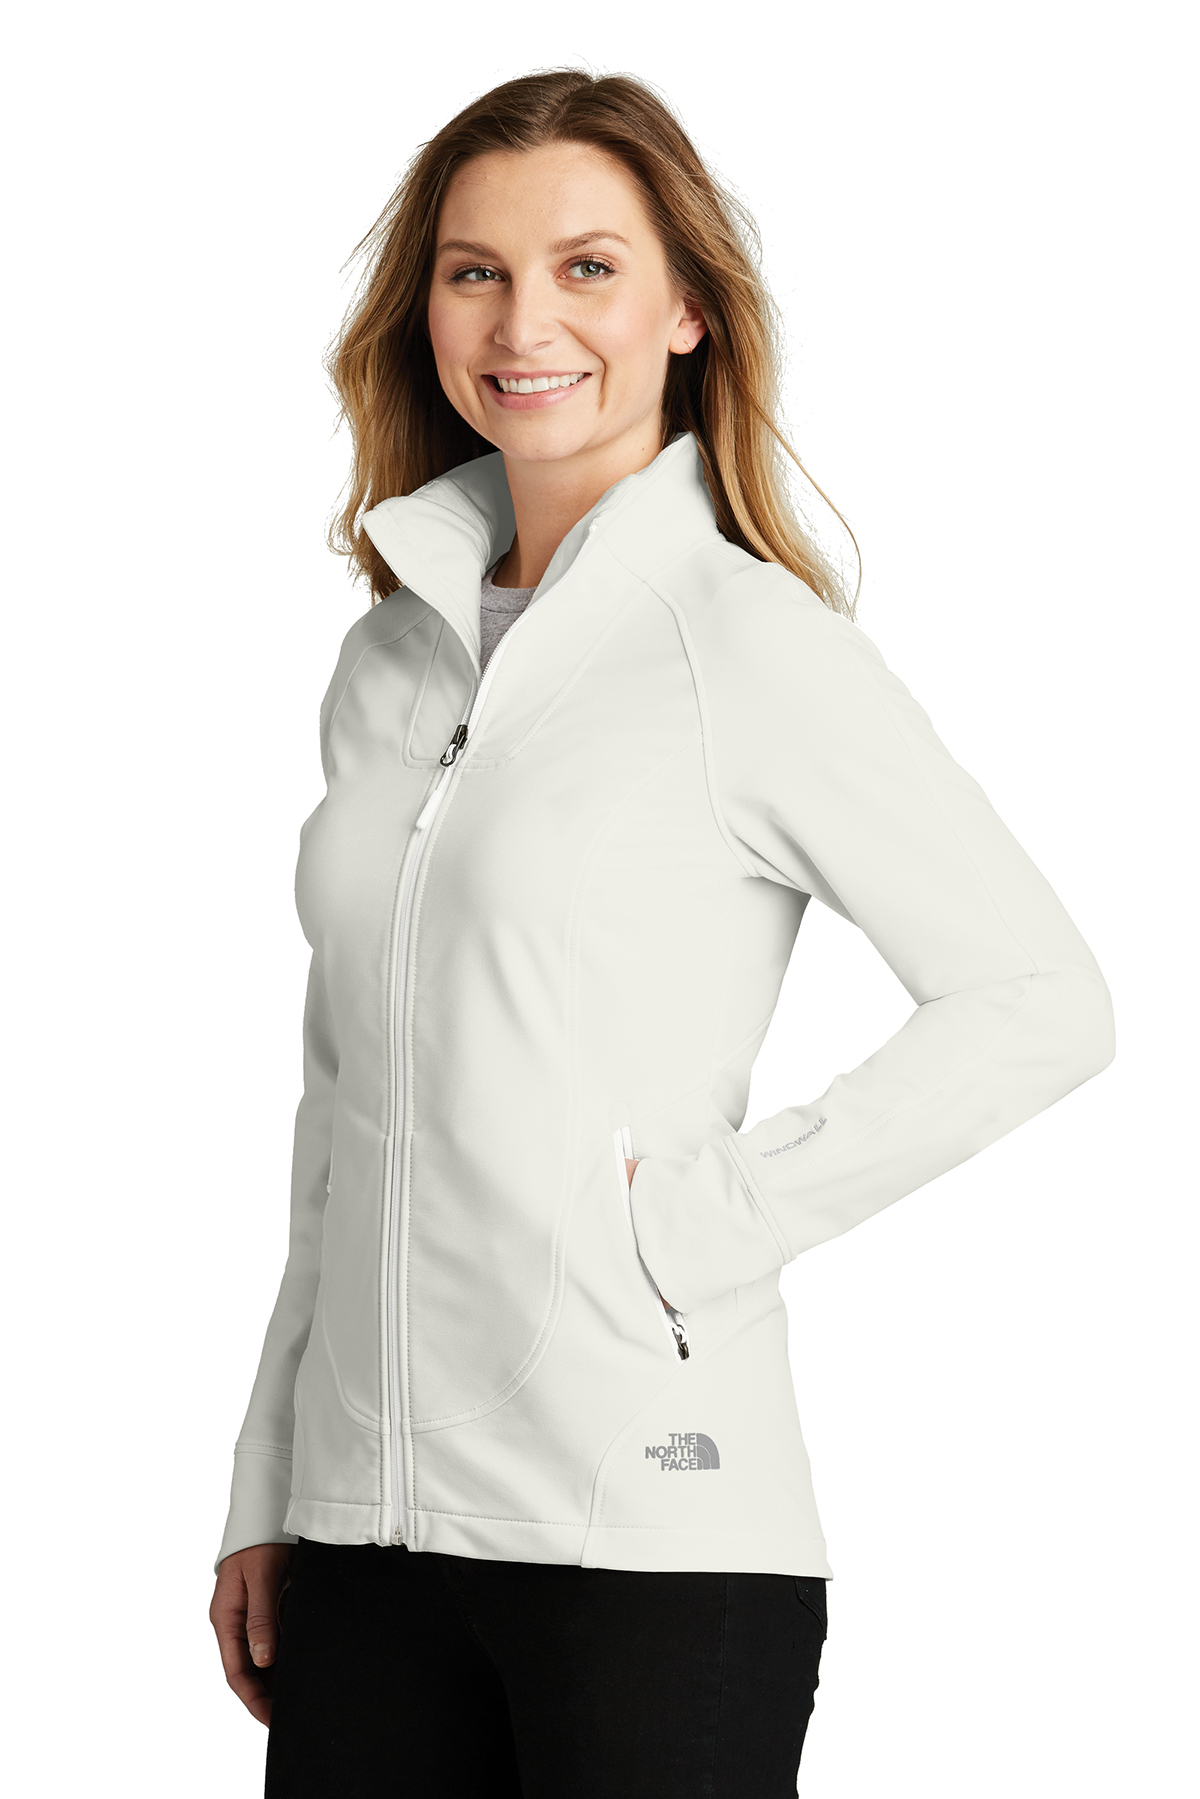 97e0c493e The North Face® Ladies Tech Stretch Soft Shell Jacket | Ladies/Women ...